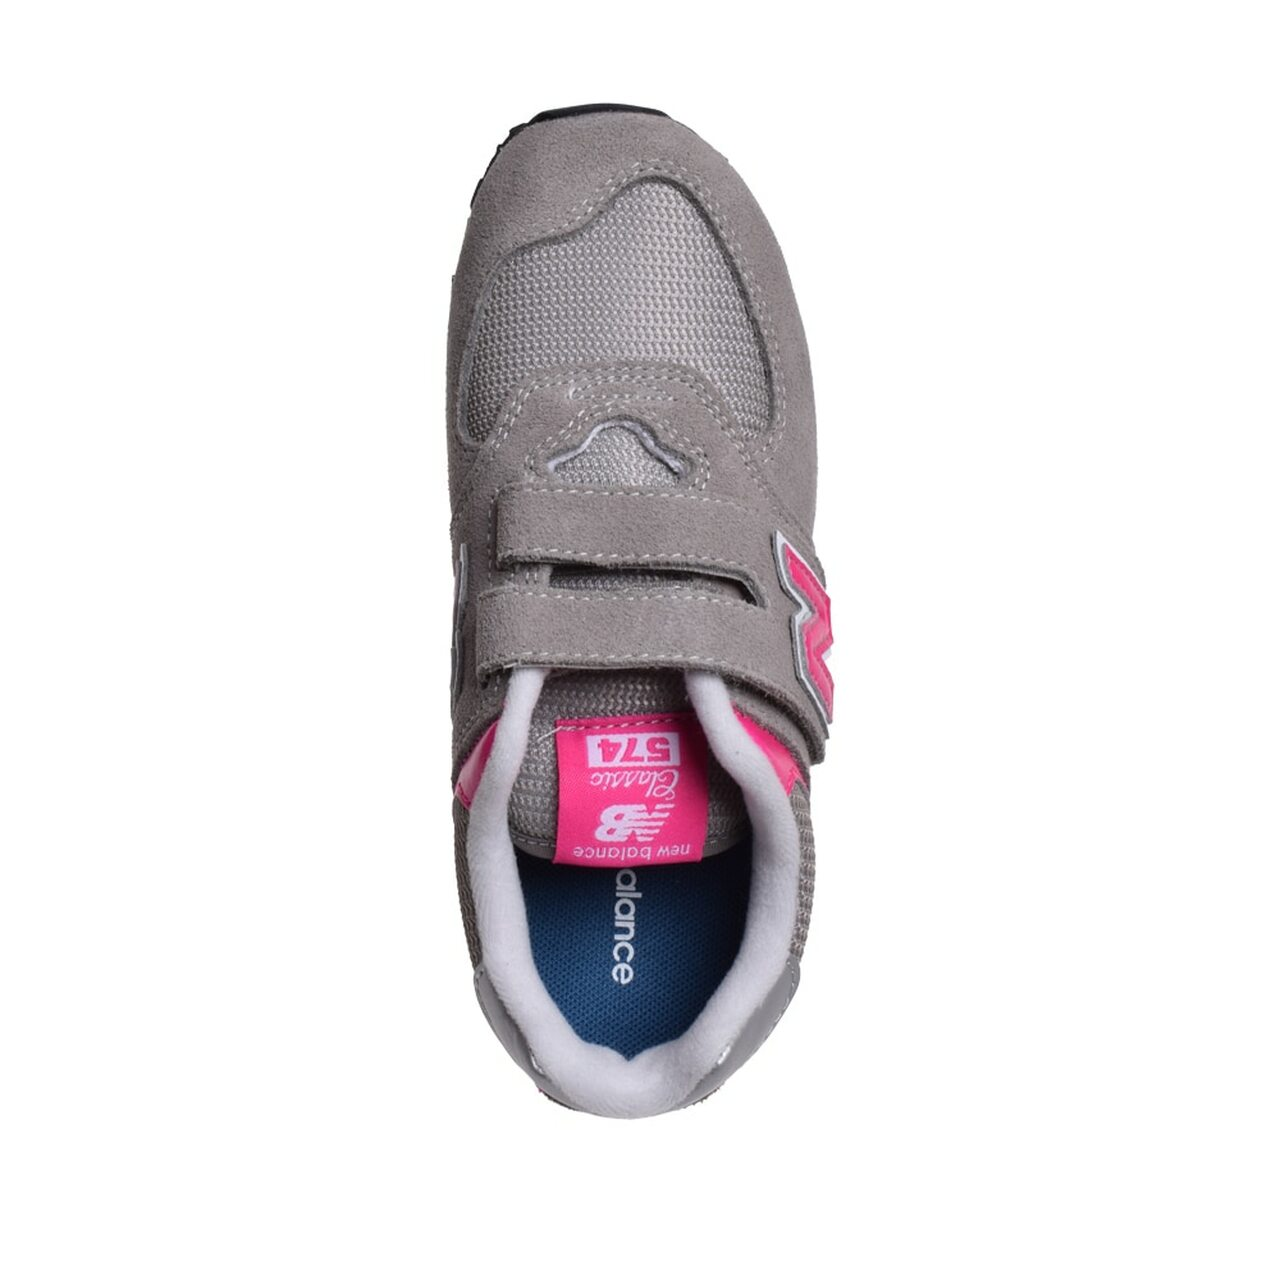 b8dafe235681d ... Kids New Balance Girls Classic 574 Leather Low Top Velcro Running  Sneaker~pp-9106dc53 ...